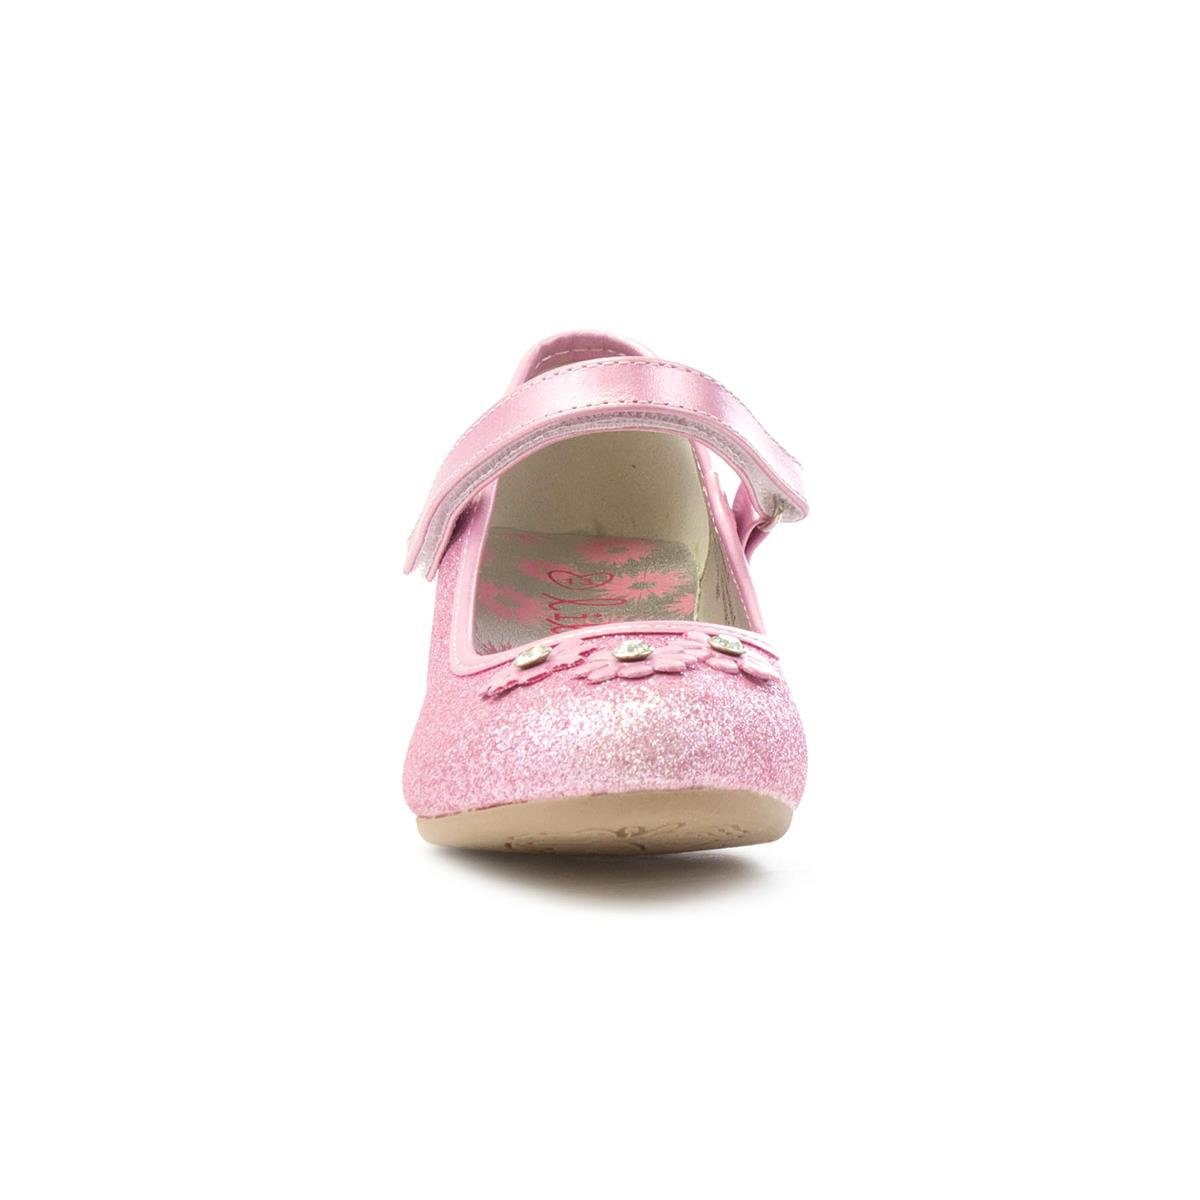 2019 year for lady- Lilley Sparkle Girls Pink Flower Party Shoe-20807